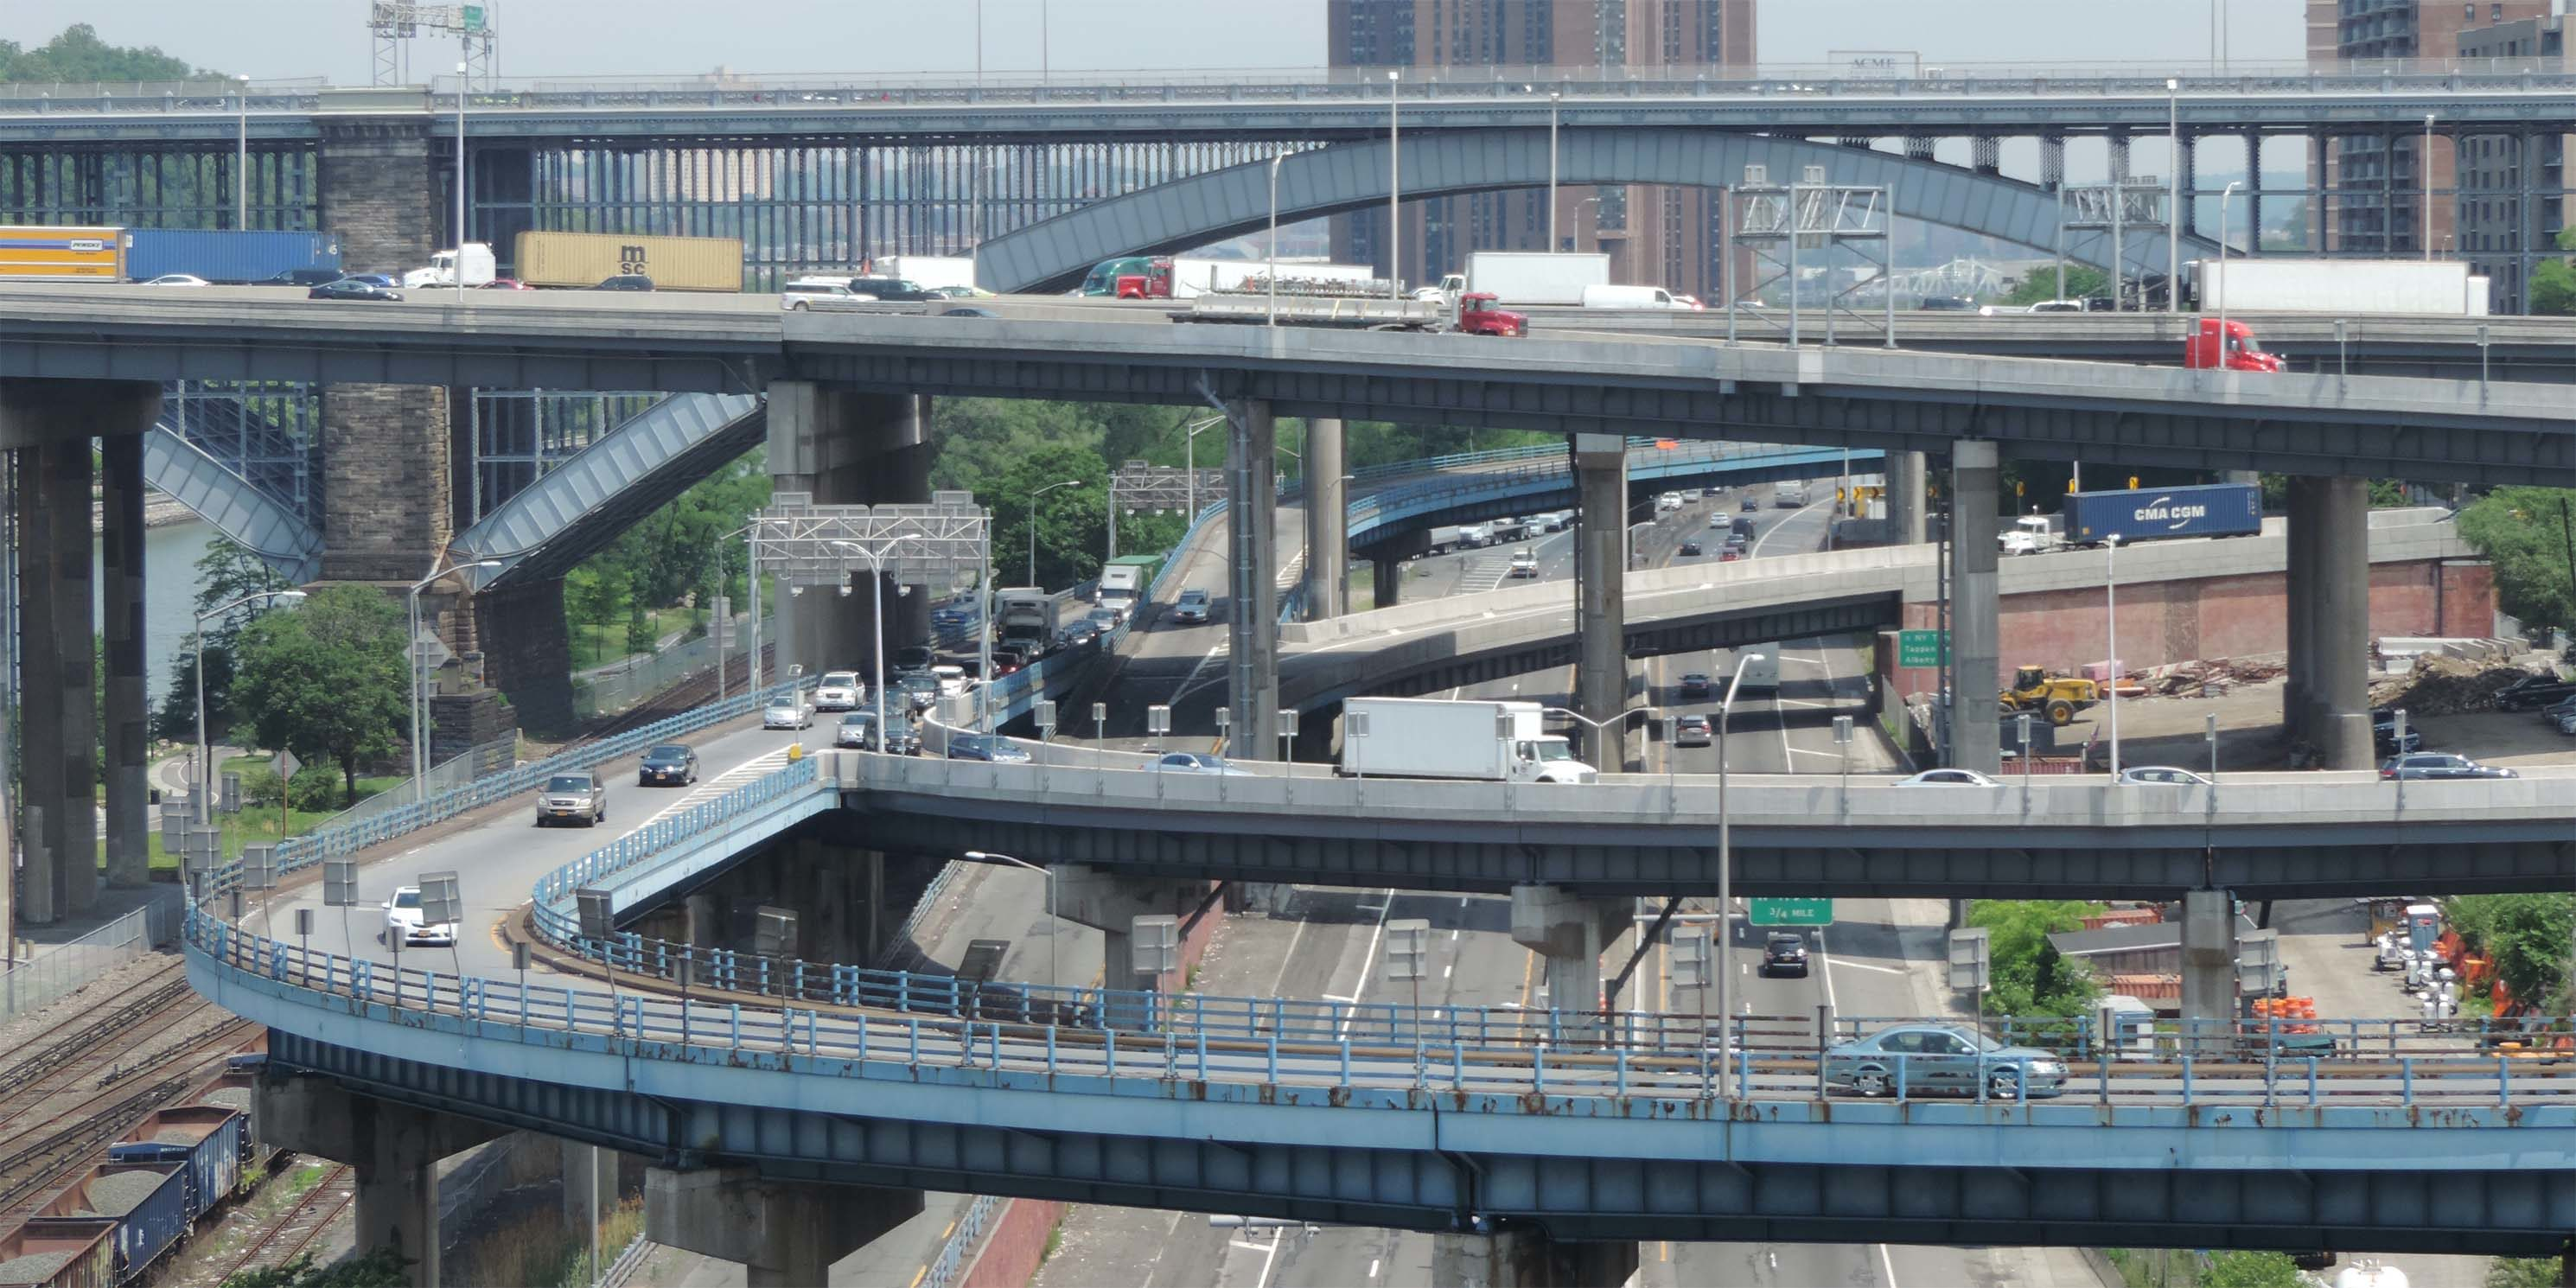 a tange of highways at an interchange of the Major Deegan and Cross Bronx Expressways in the Bronx